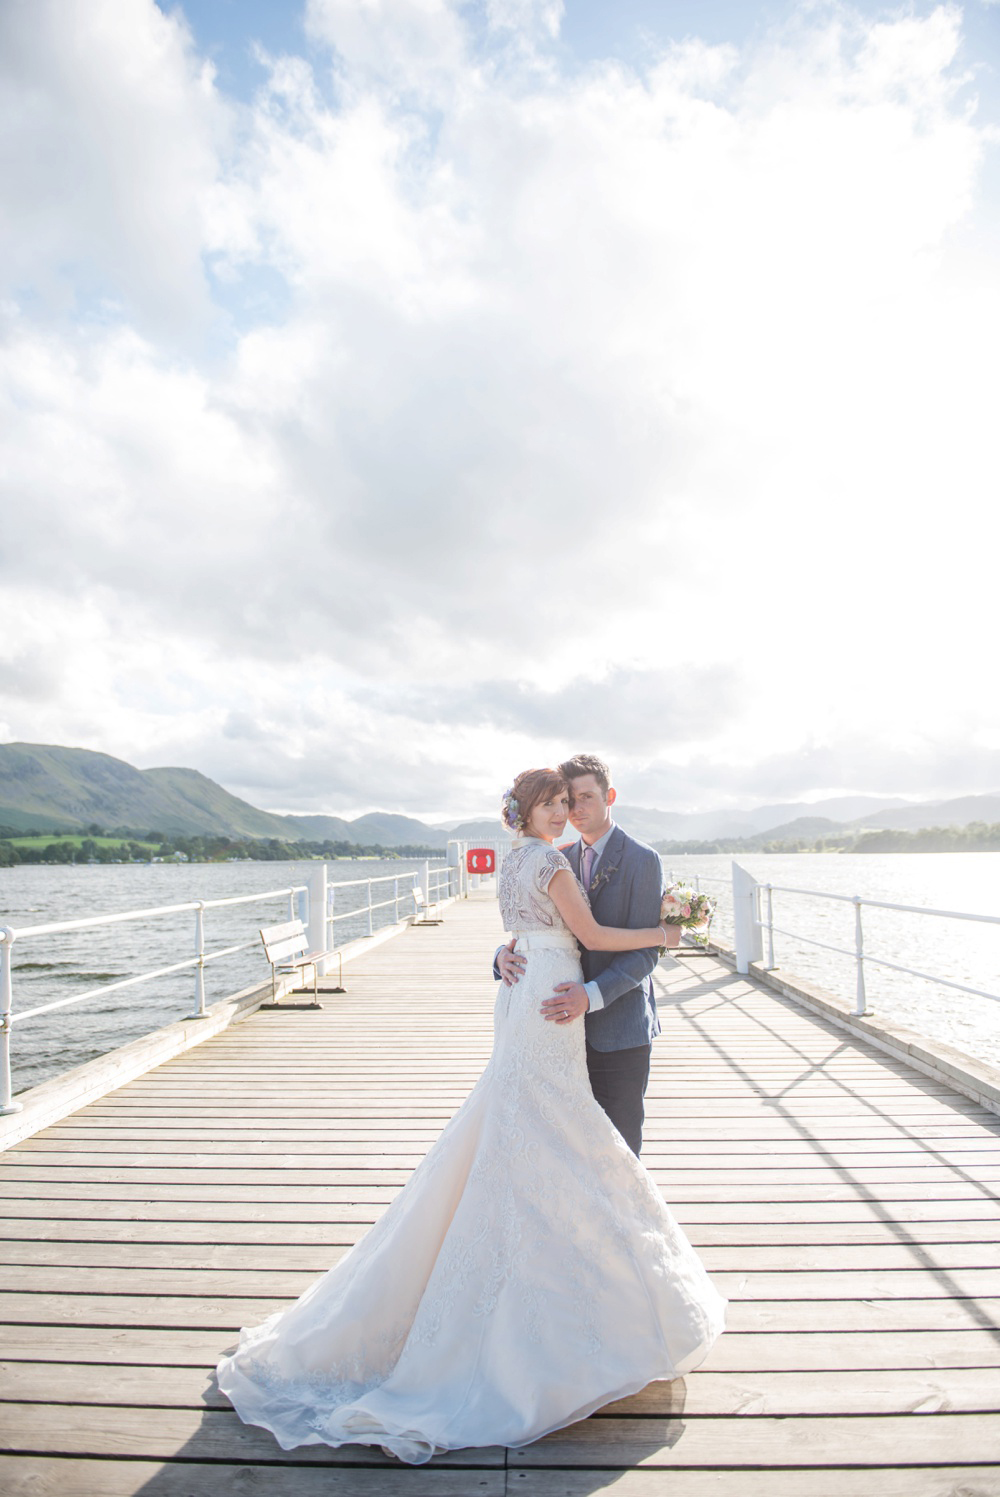 Wedding-on-lake.jpg